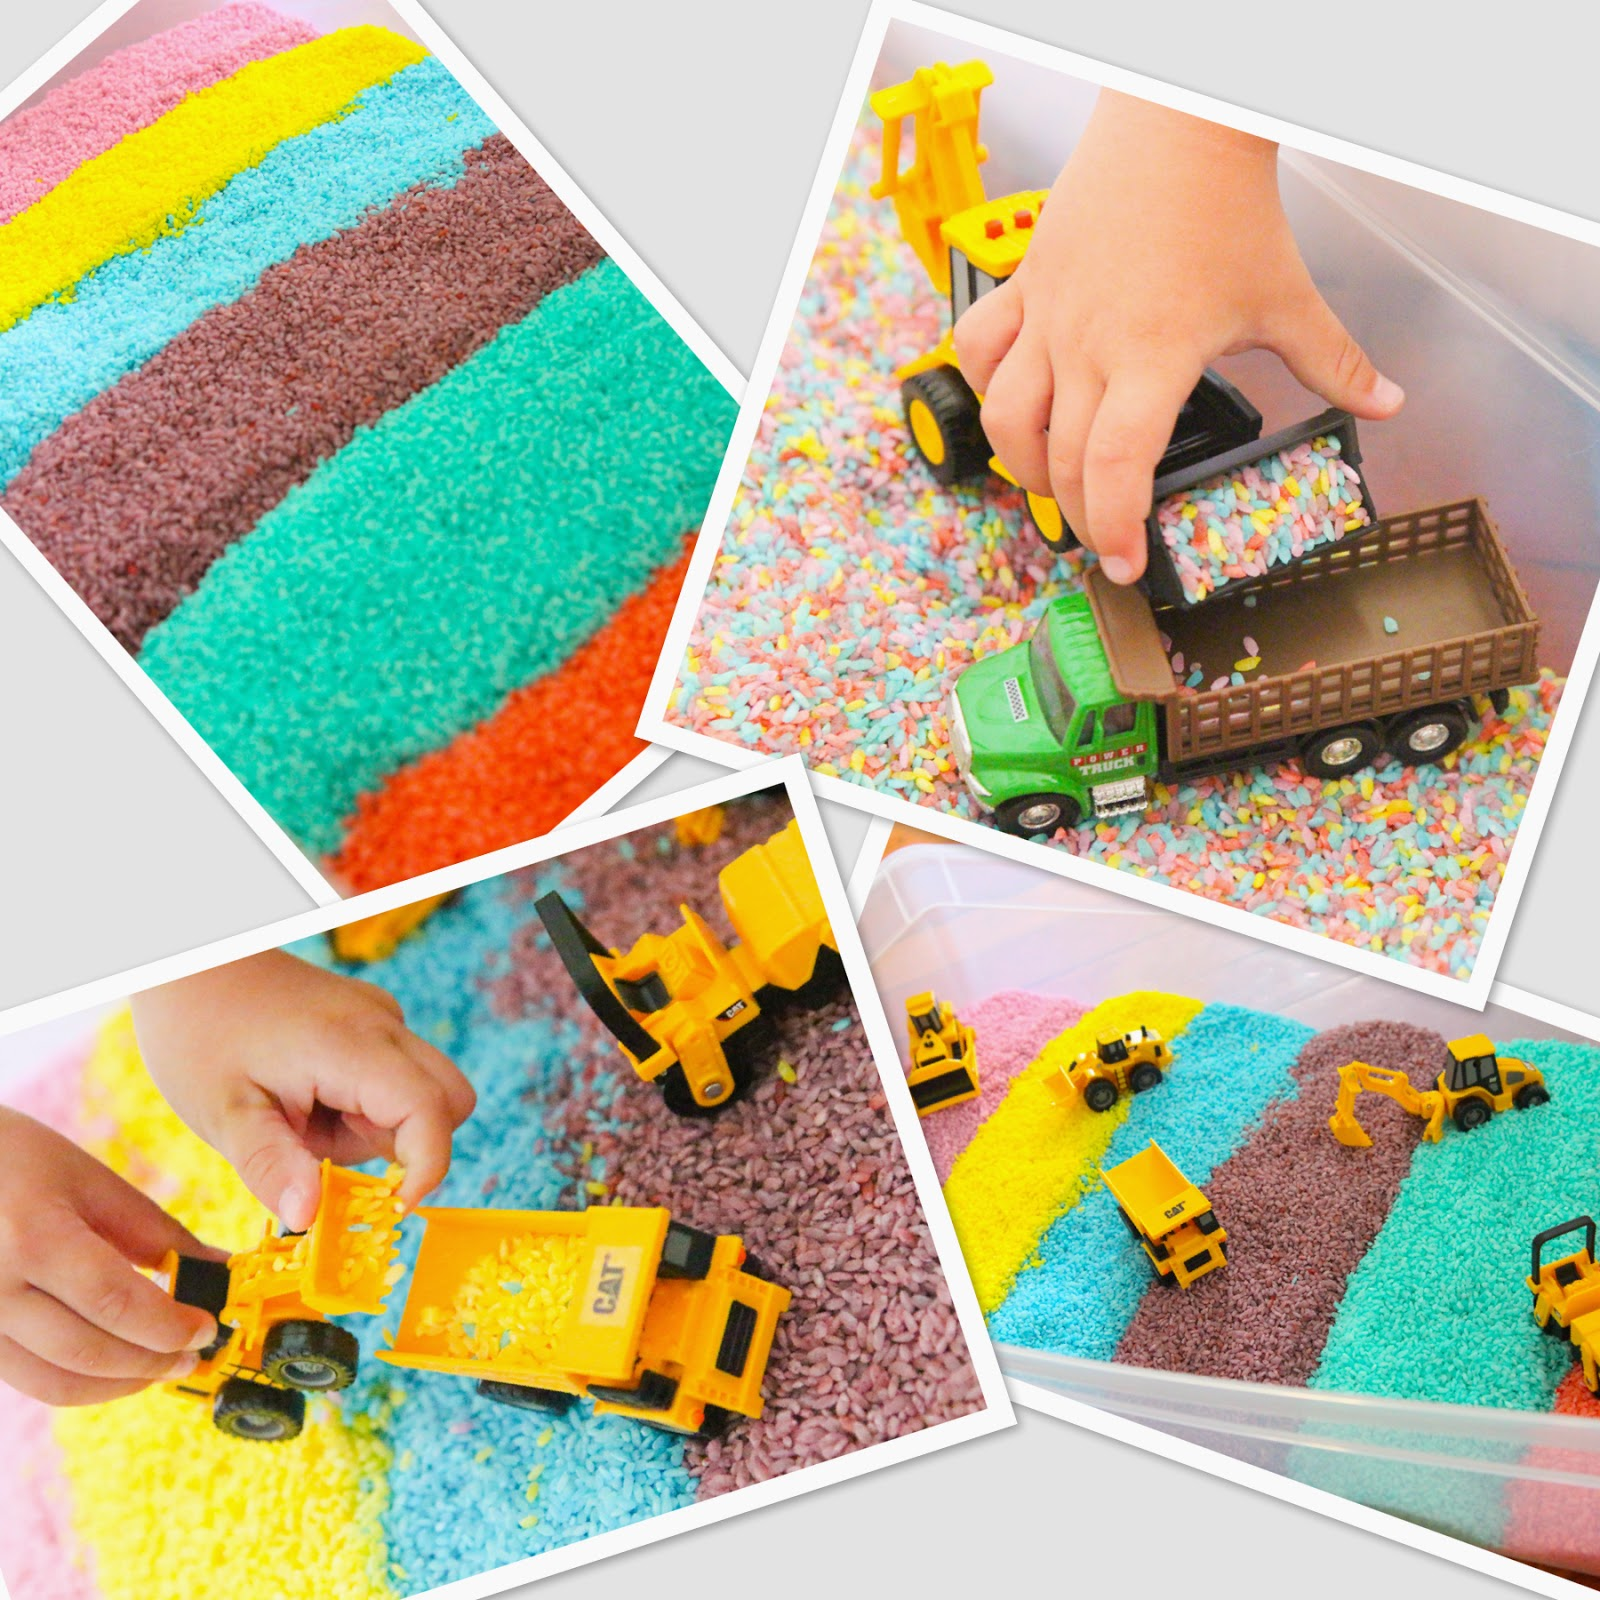 Sandpaper And Silly Putty: A Pretty Little Mess